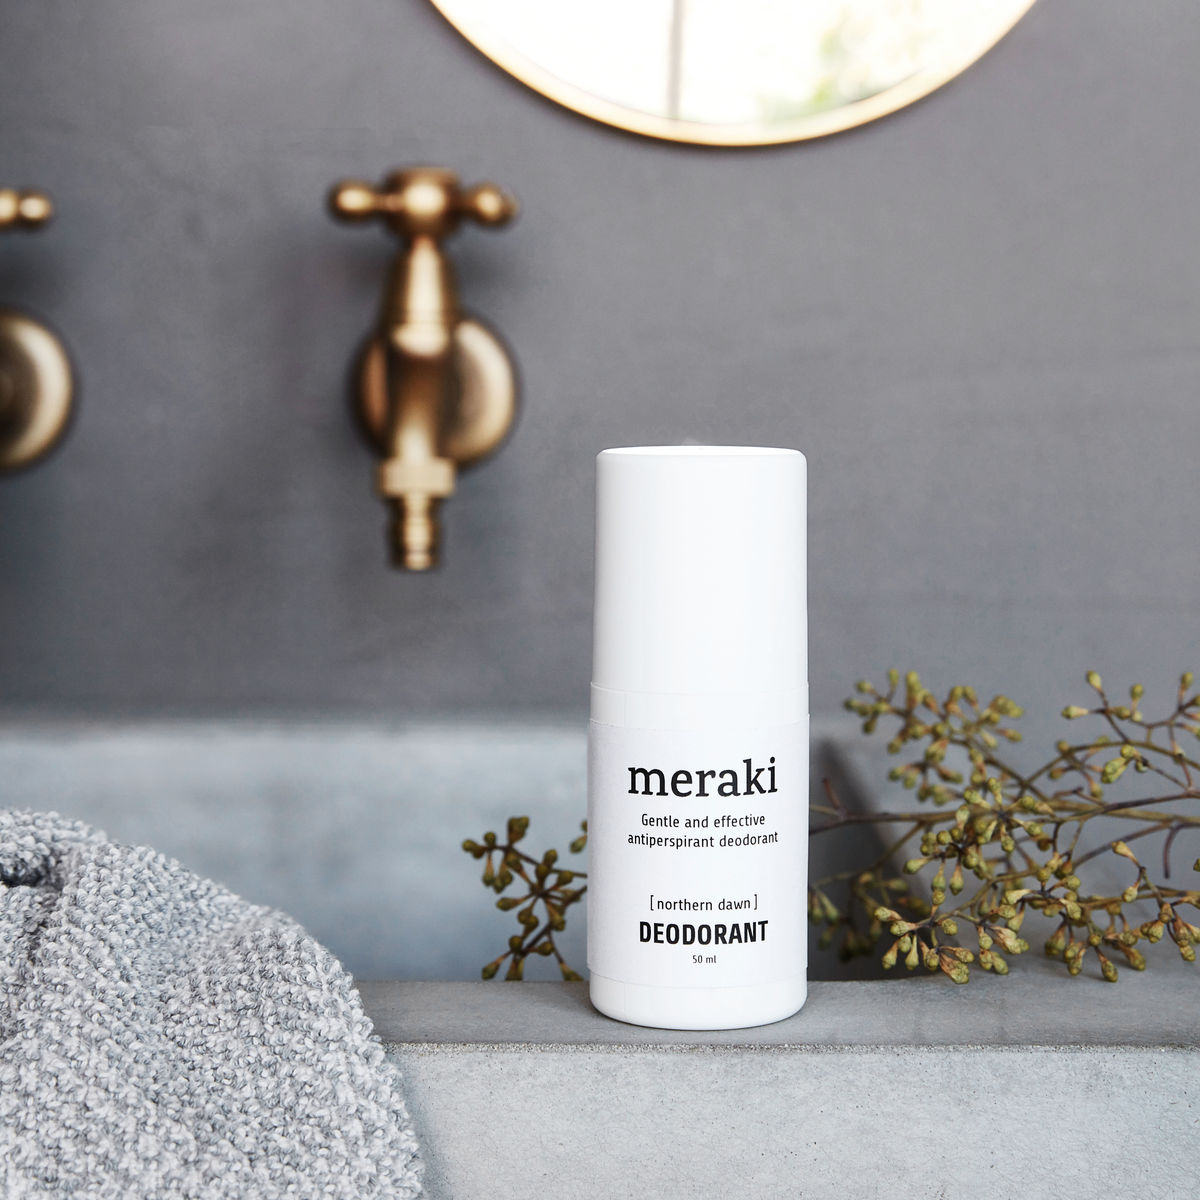 Meraki - Deodorant - Northern dawn 1